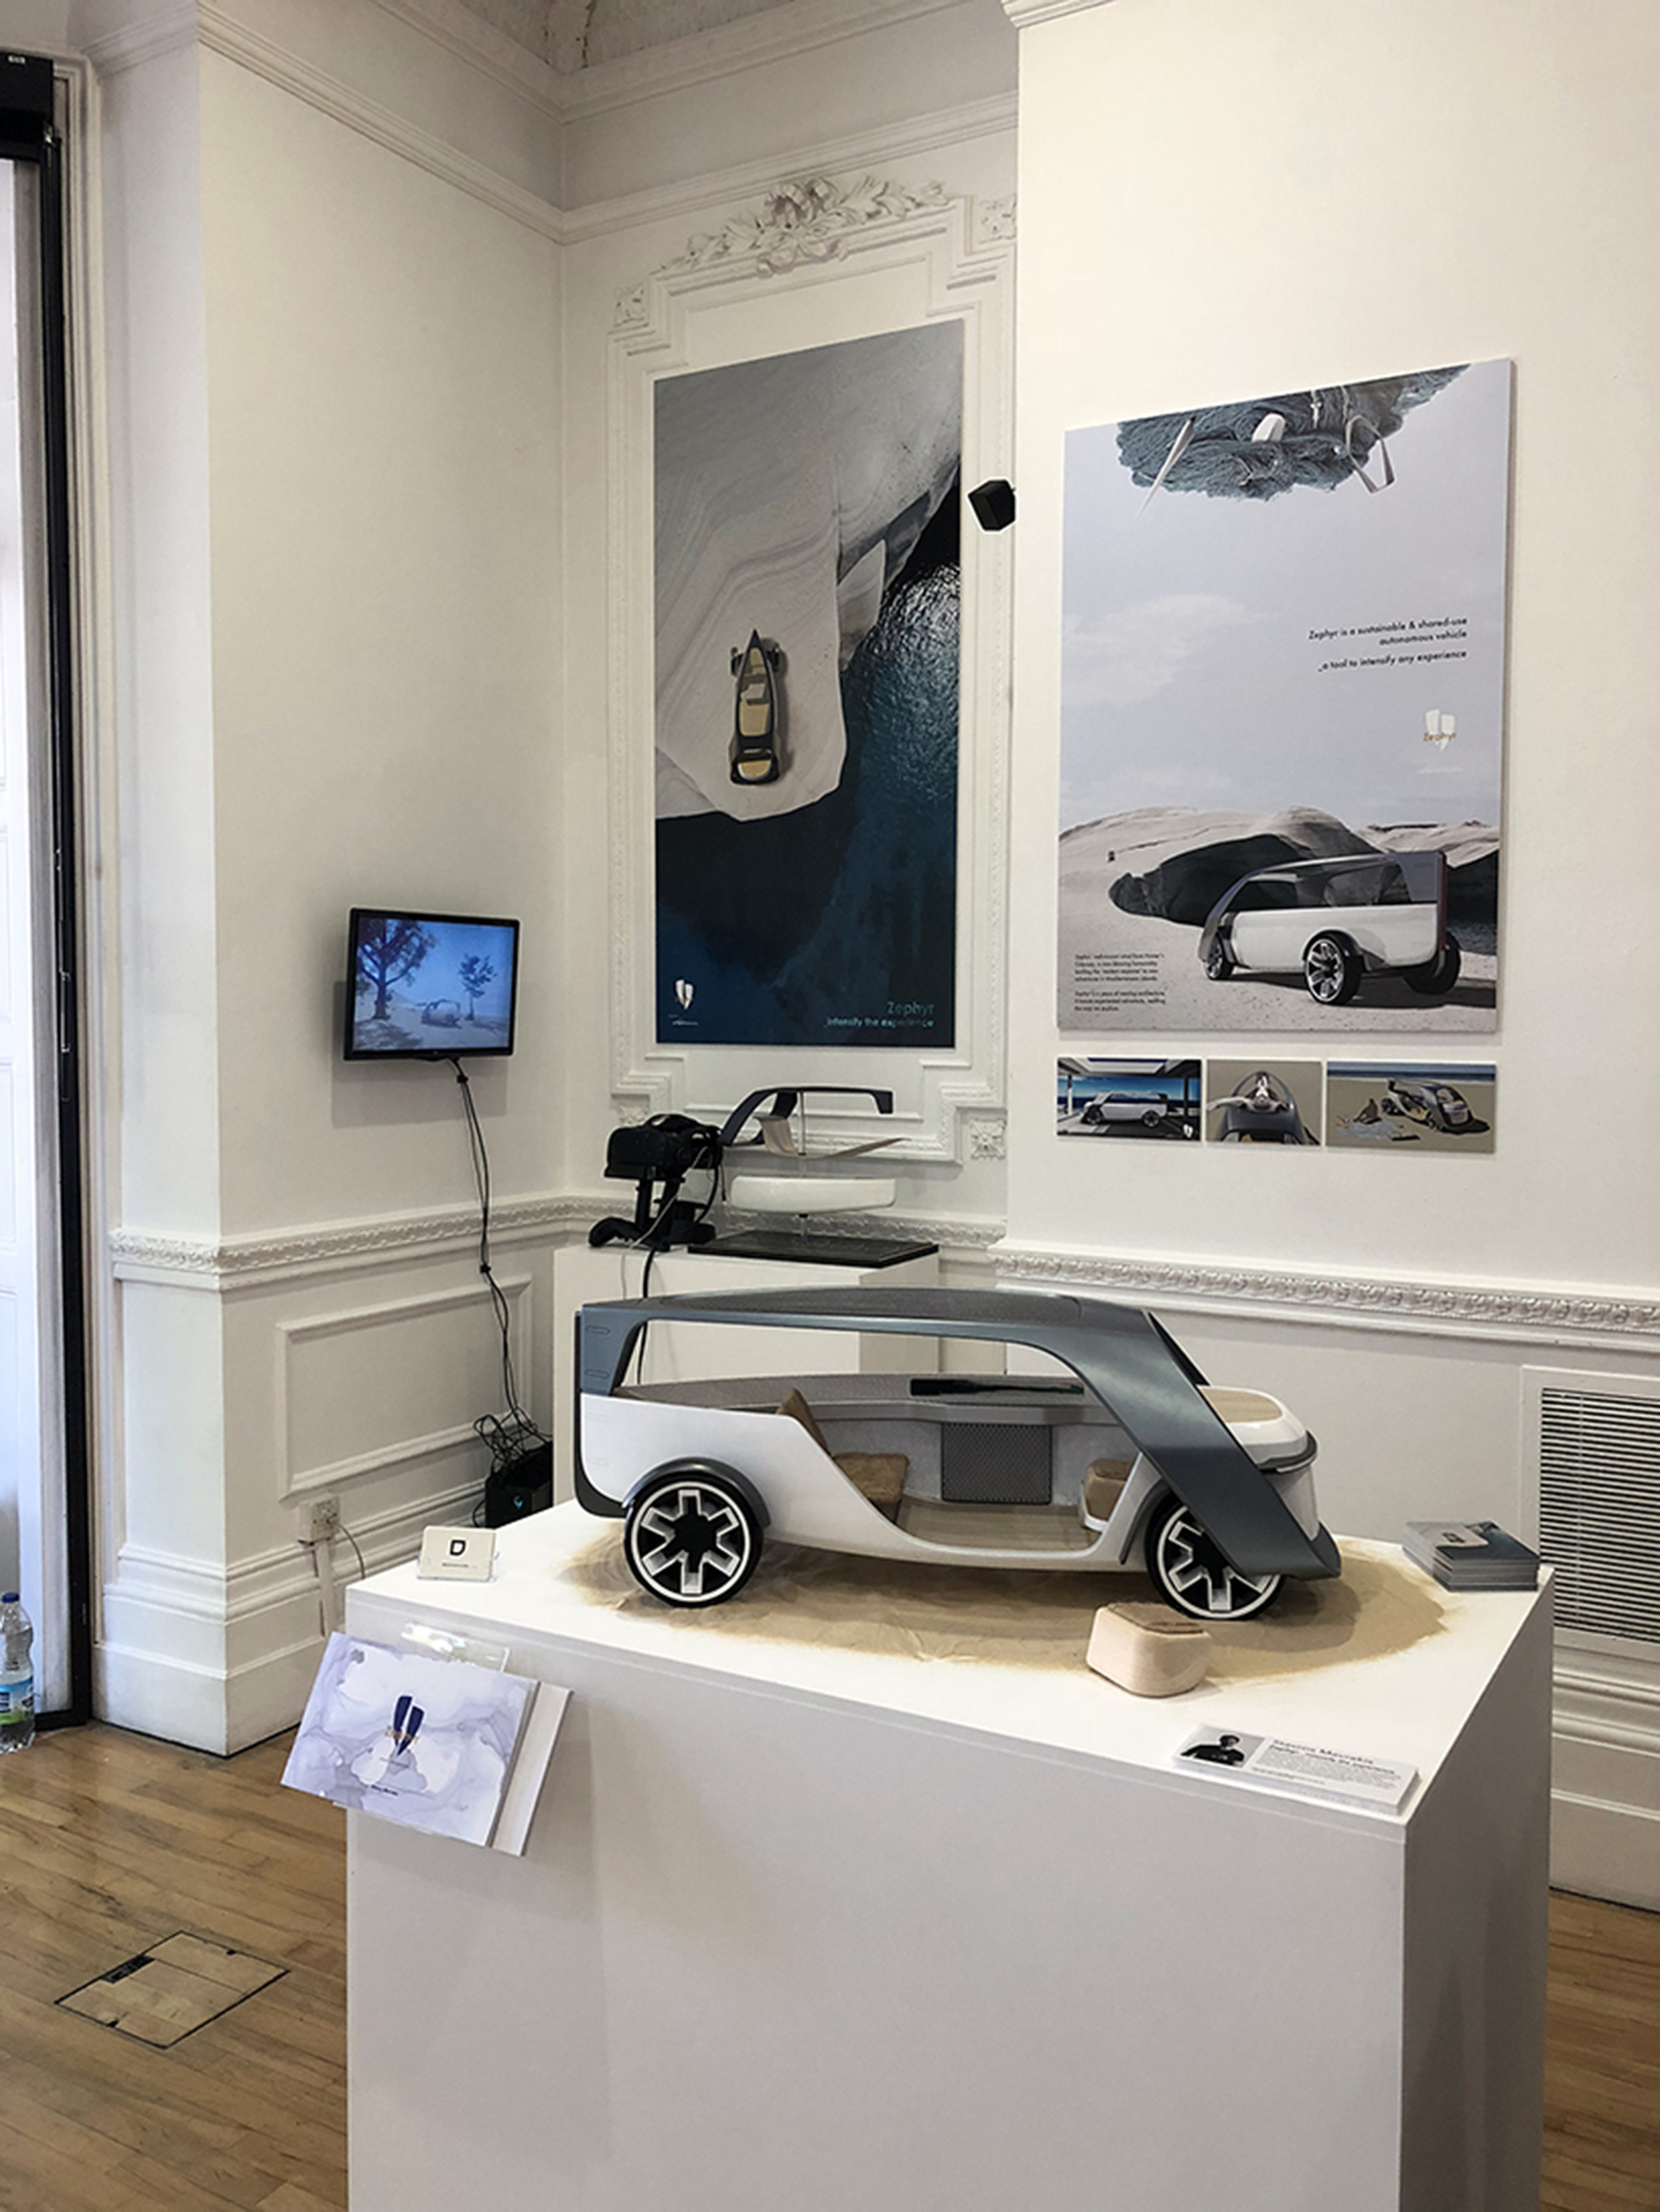 Display of the project at the Graduation Show at Royal College of Art, London 2018